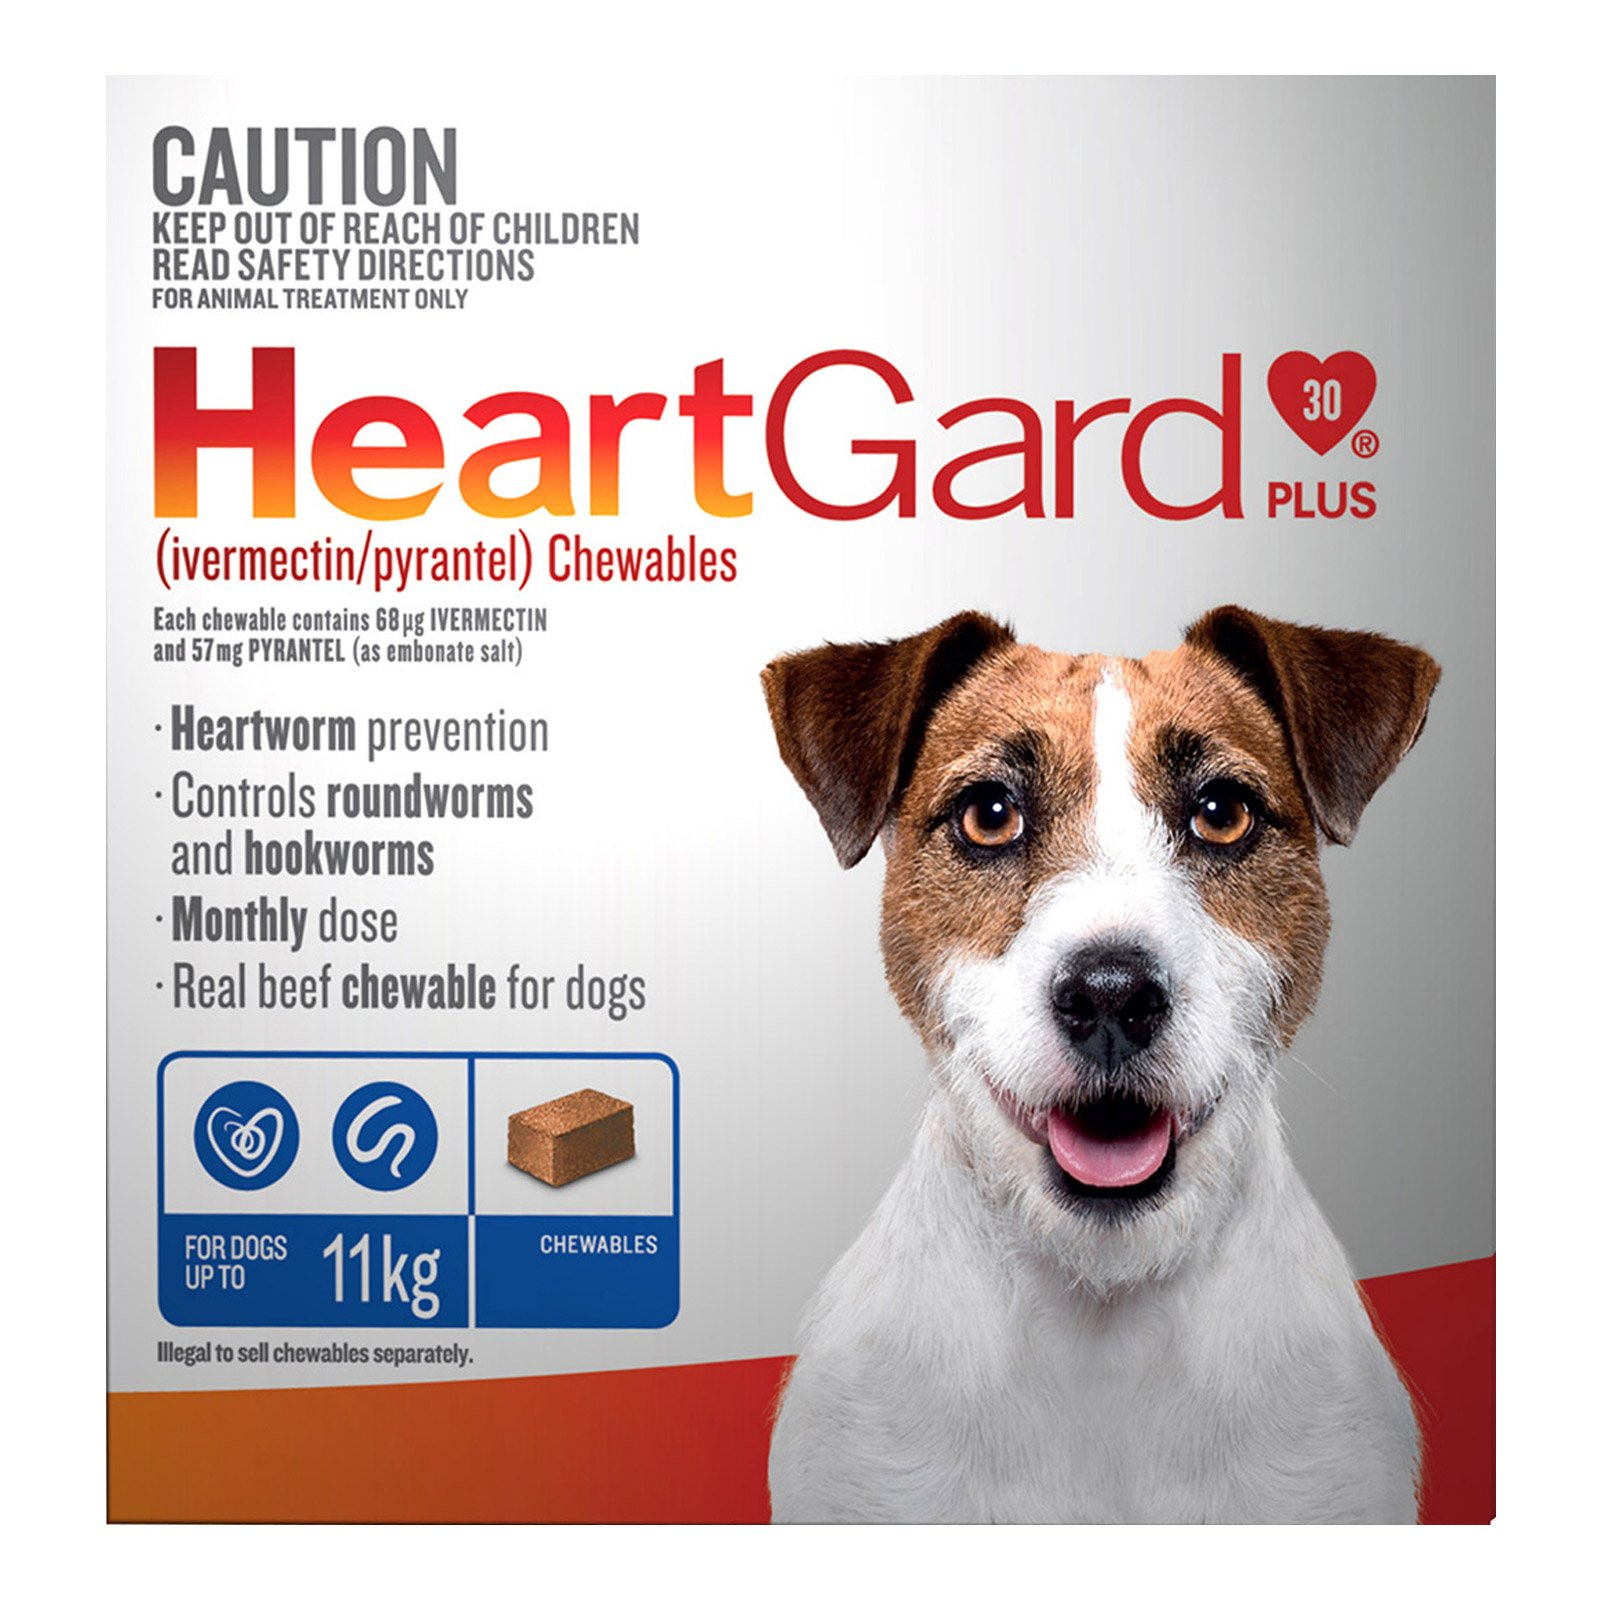 heartgard-plus-chewables-heartguard-plus-for-small-dogs-up-to-11kg-blue.jpg